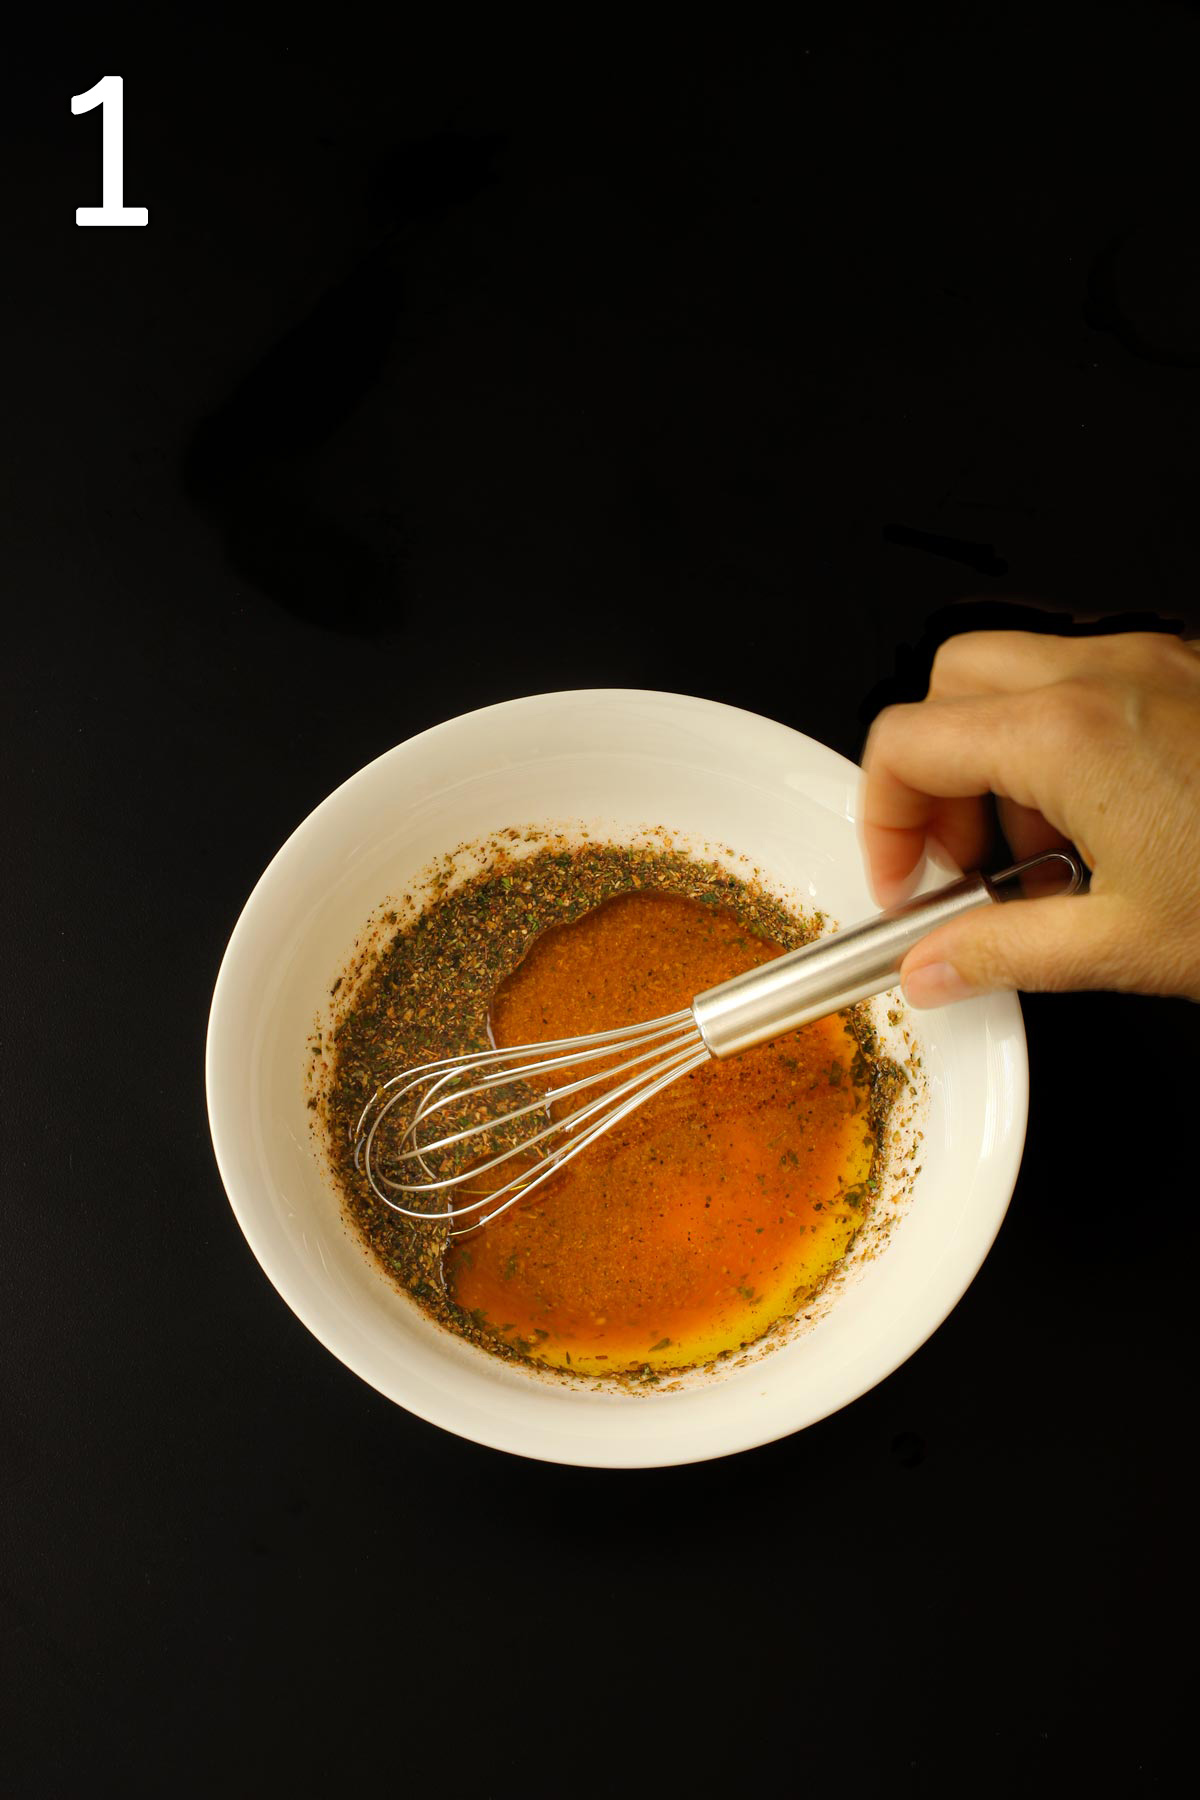 greek marinade ingredients in white bowl, hand holding whisk.